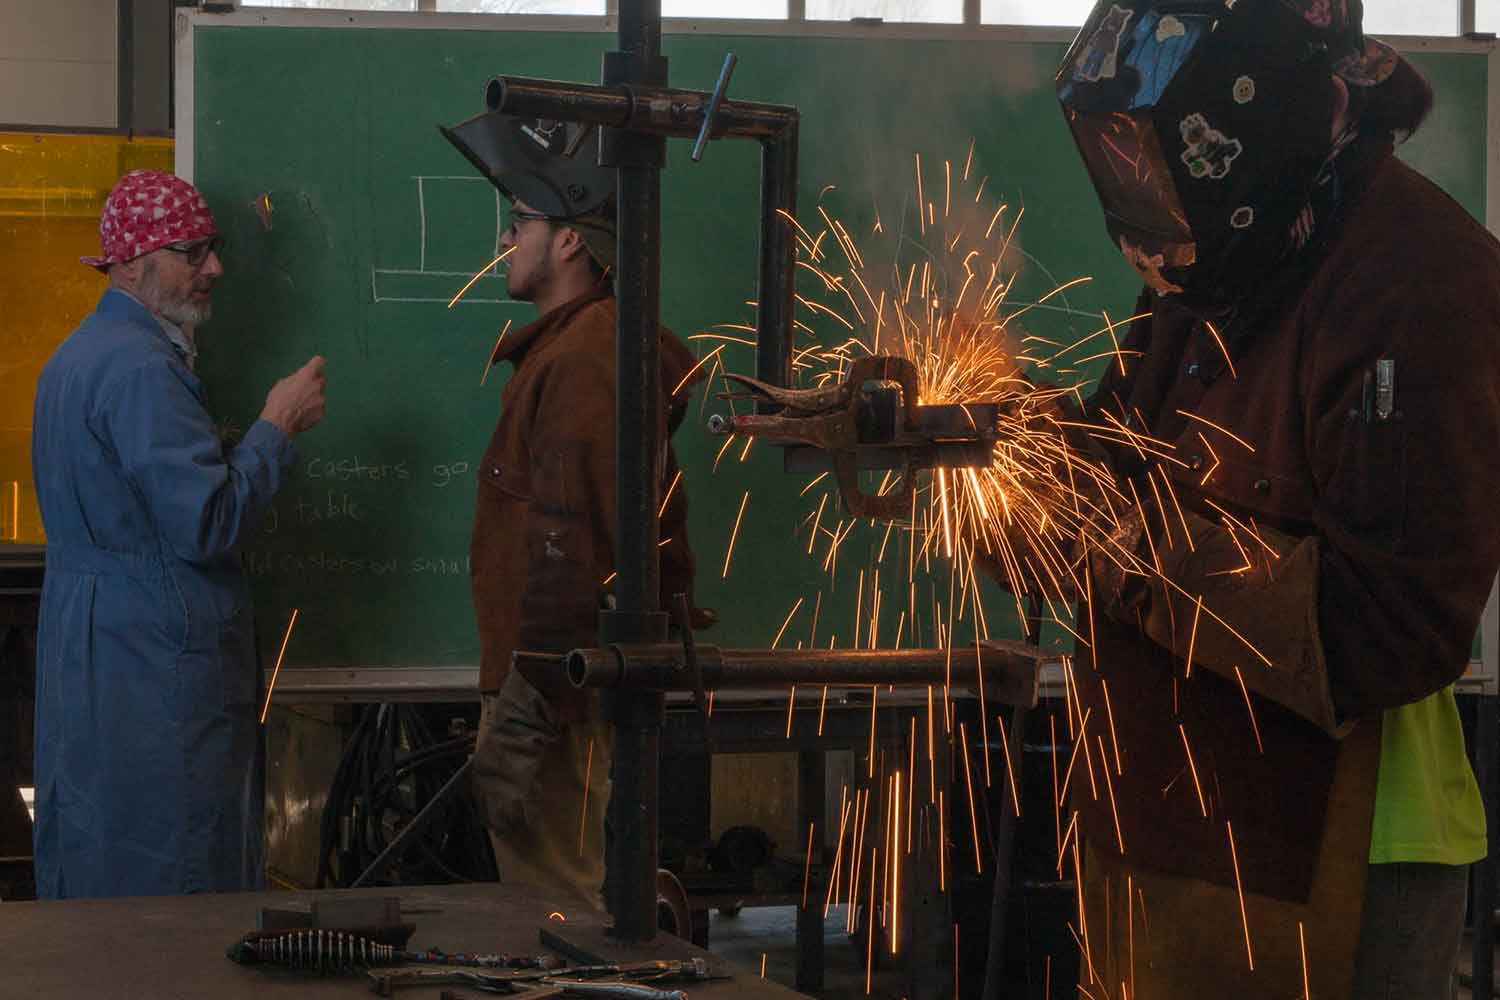 A student welds while an instructor teaches another student in front of a blackboard